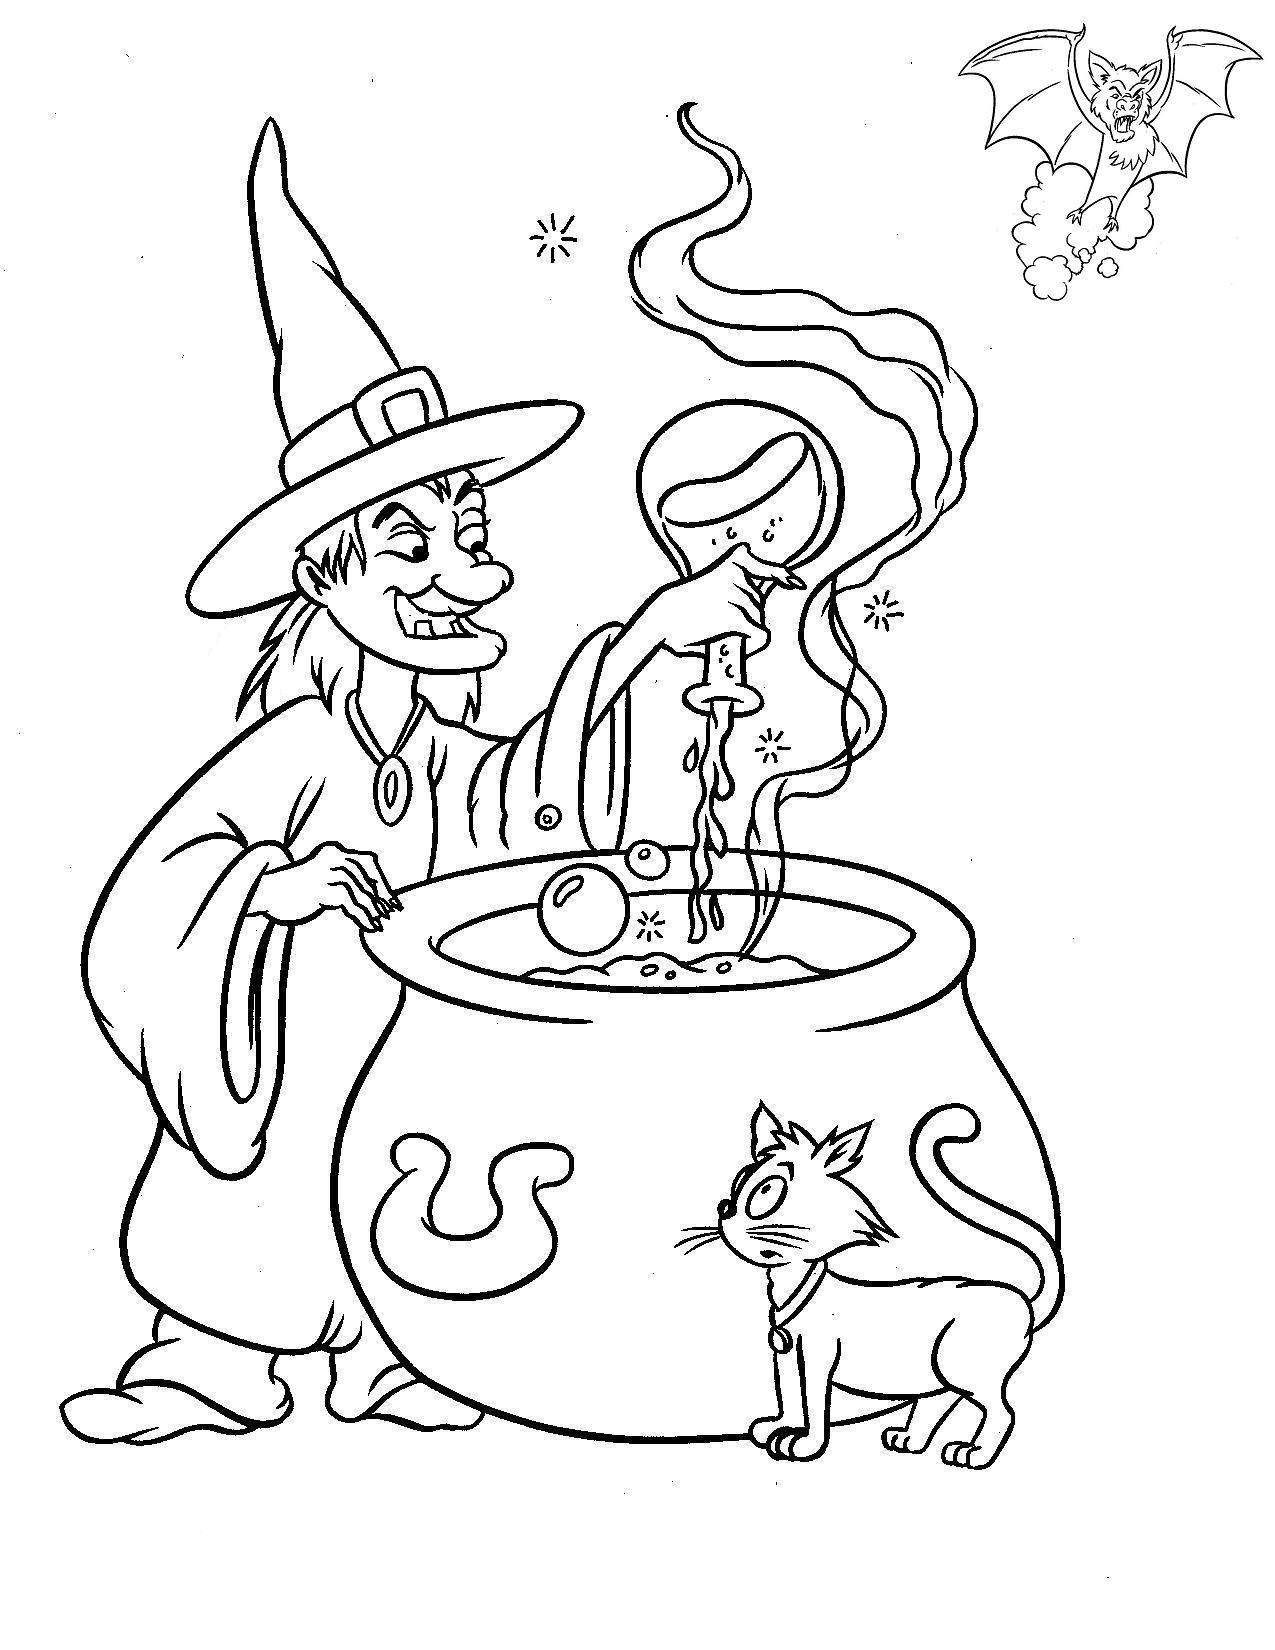 Halloween Witch And Halloween Cat Coloring Pages | Halloween color ...